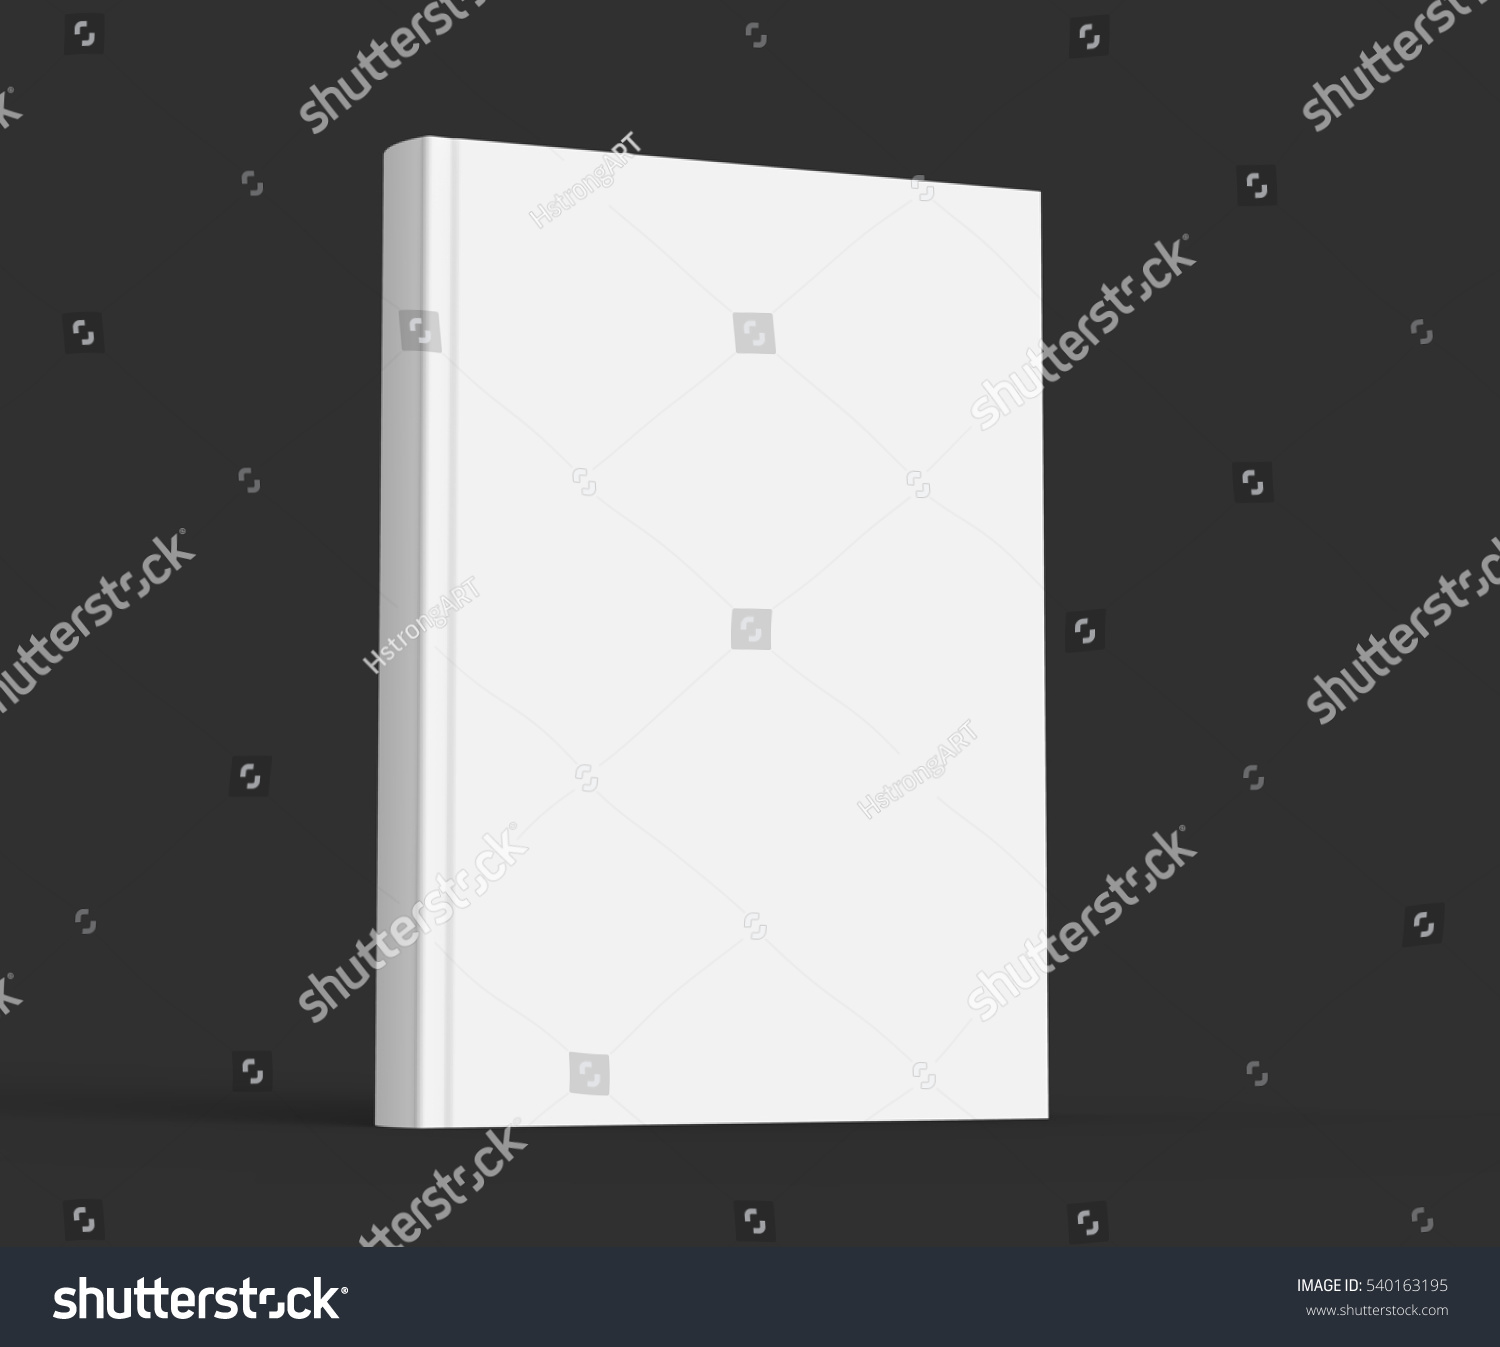 Blank Black Book Cover Template ~ Blank hard cover book template stock illustration